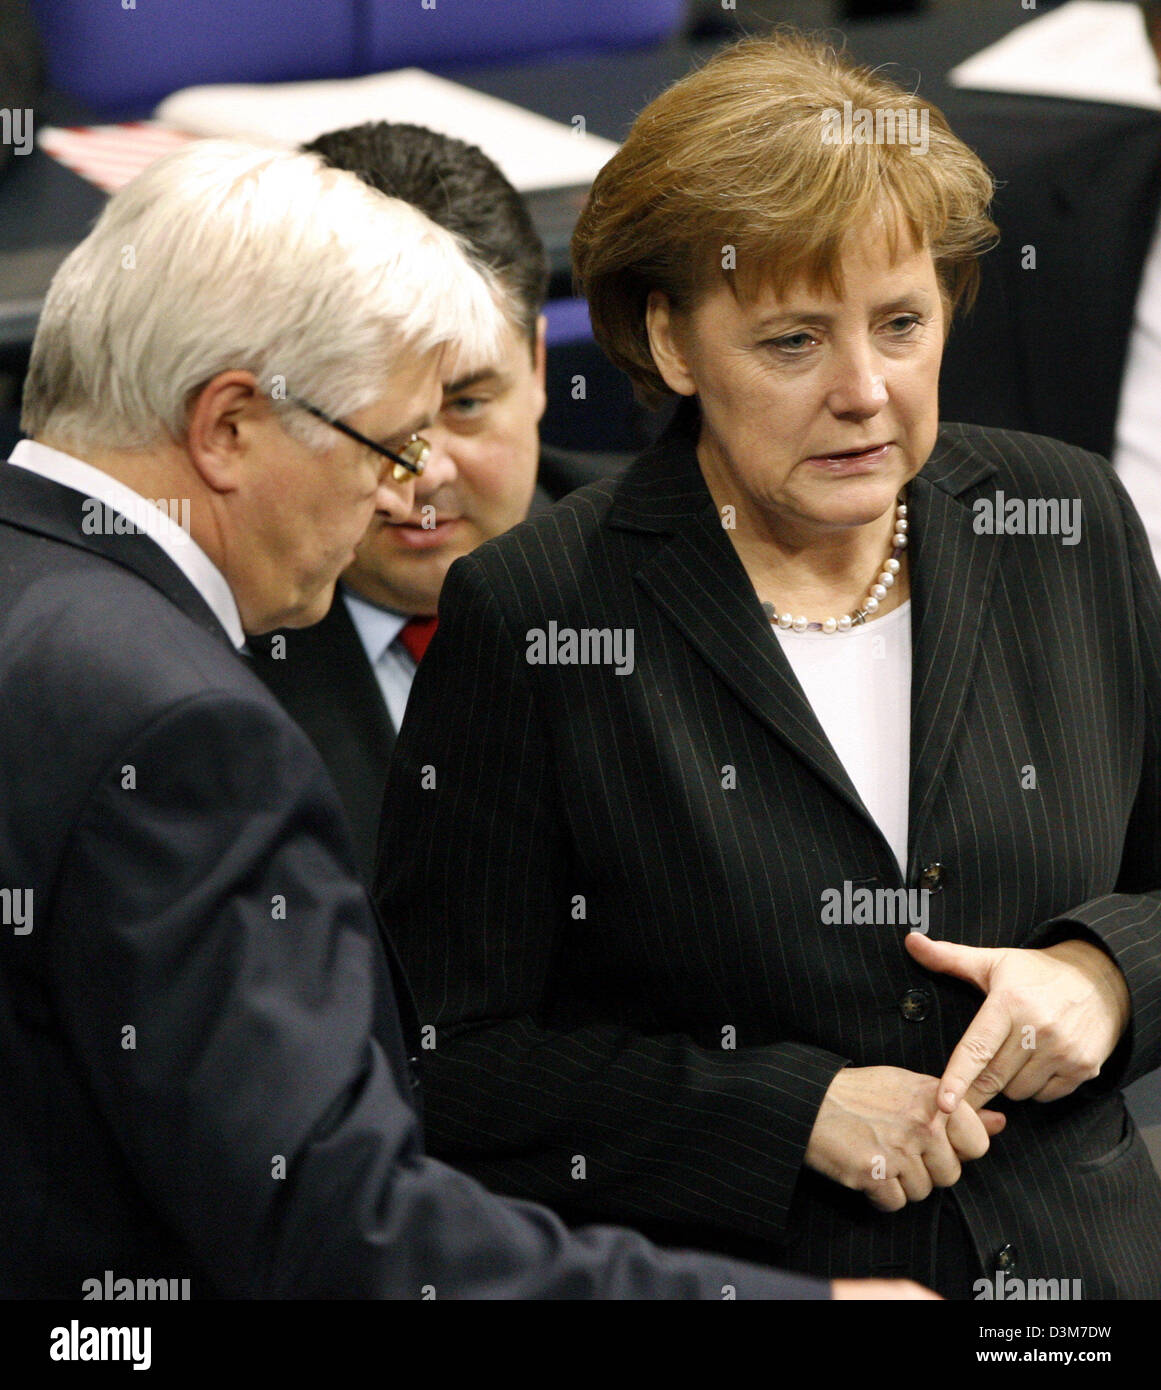 (dpa) - German Chancellor Angela Merkel (CDU) (R) and Foreign Minister Frank-Walter Steinmeier (SPD) (L) talk to each other during a parliamentary debate at the German lower house of parliament Bundestag in Berlin, on Wednesday, 14 December 2005. In the background German Environment Minister Sigmar Gabriel (SPD). Germany played no part in the US abduction of a German citizen who wa Stock Photo